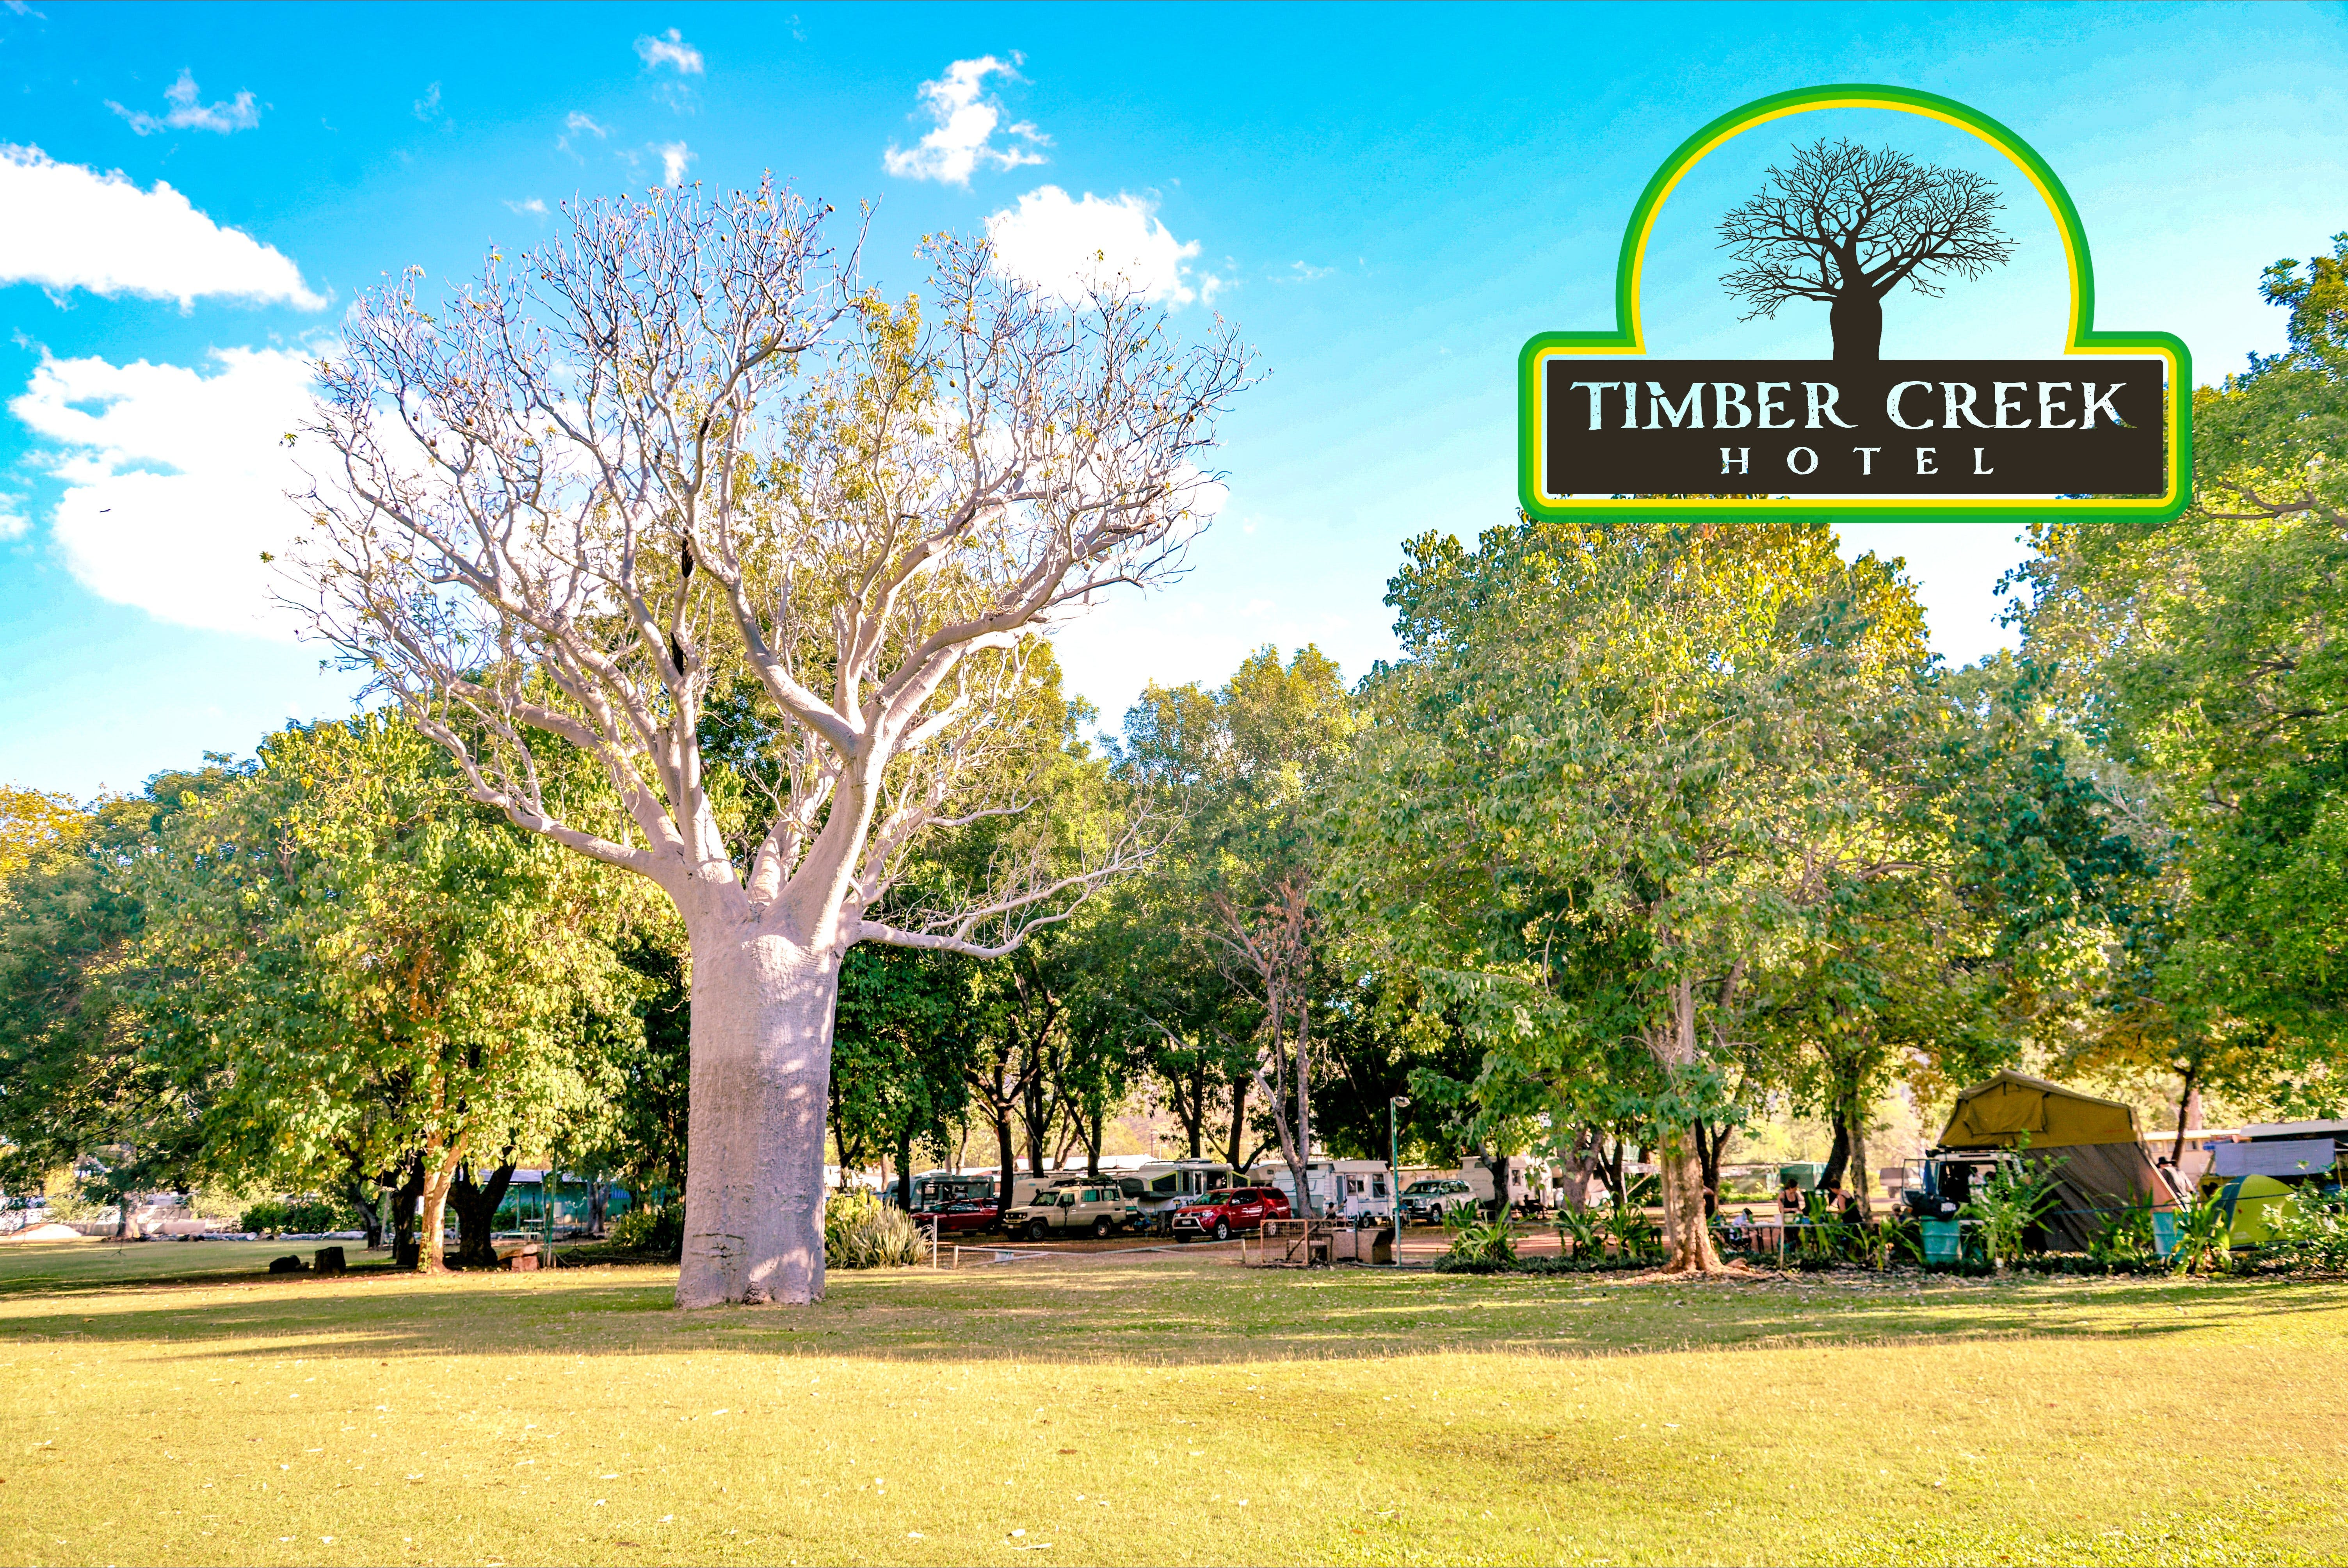 Timber Creek Hotel and Caravan Park - Accommodation Perth